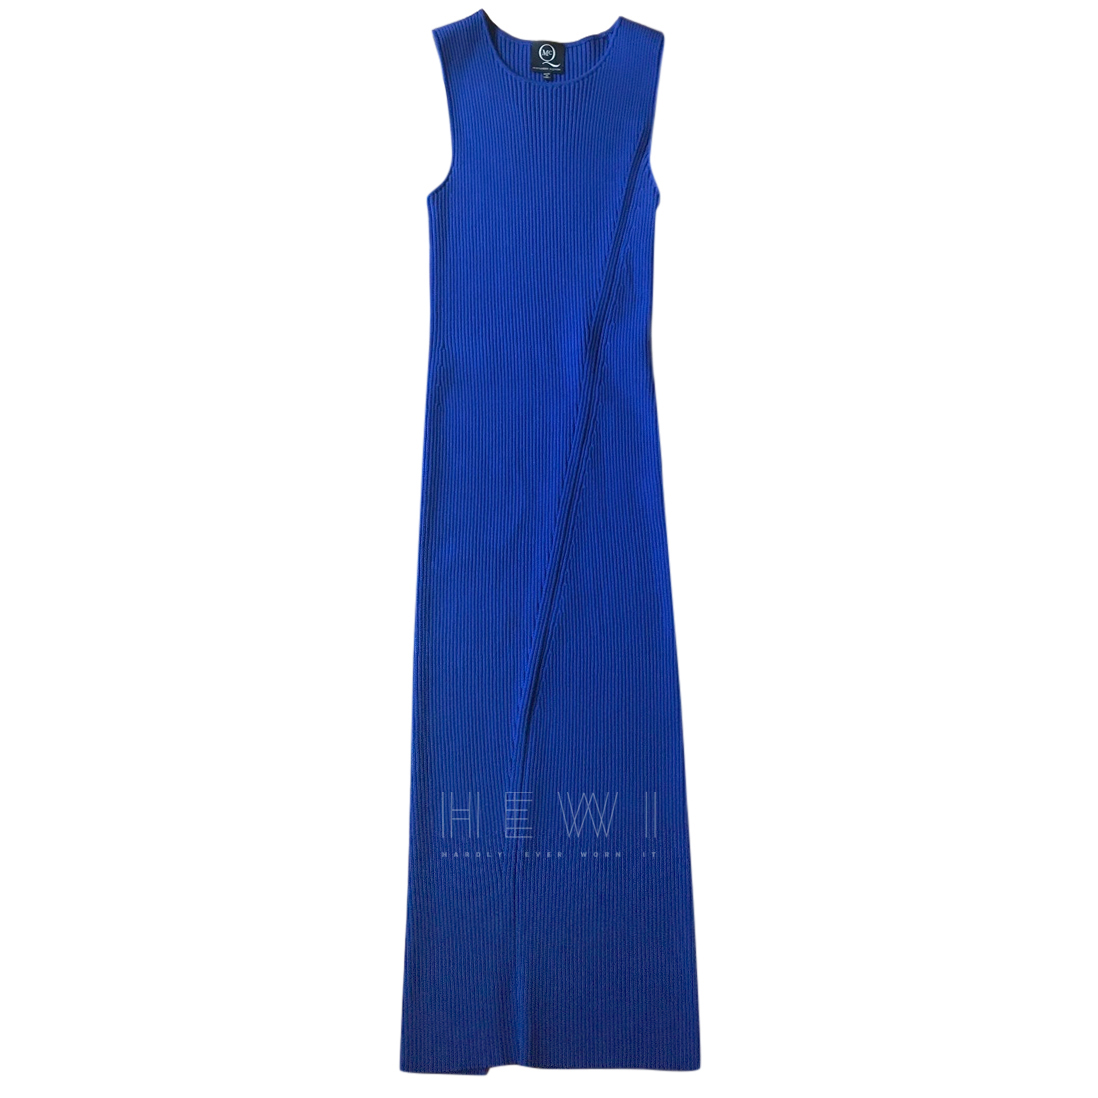 McQ Blue RIbbed Knit Dress